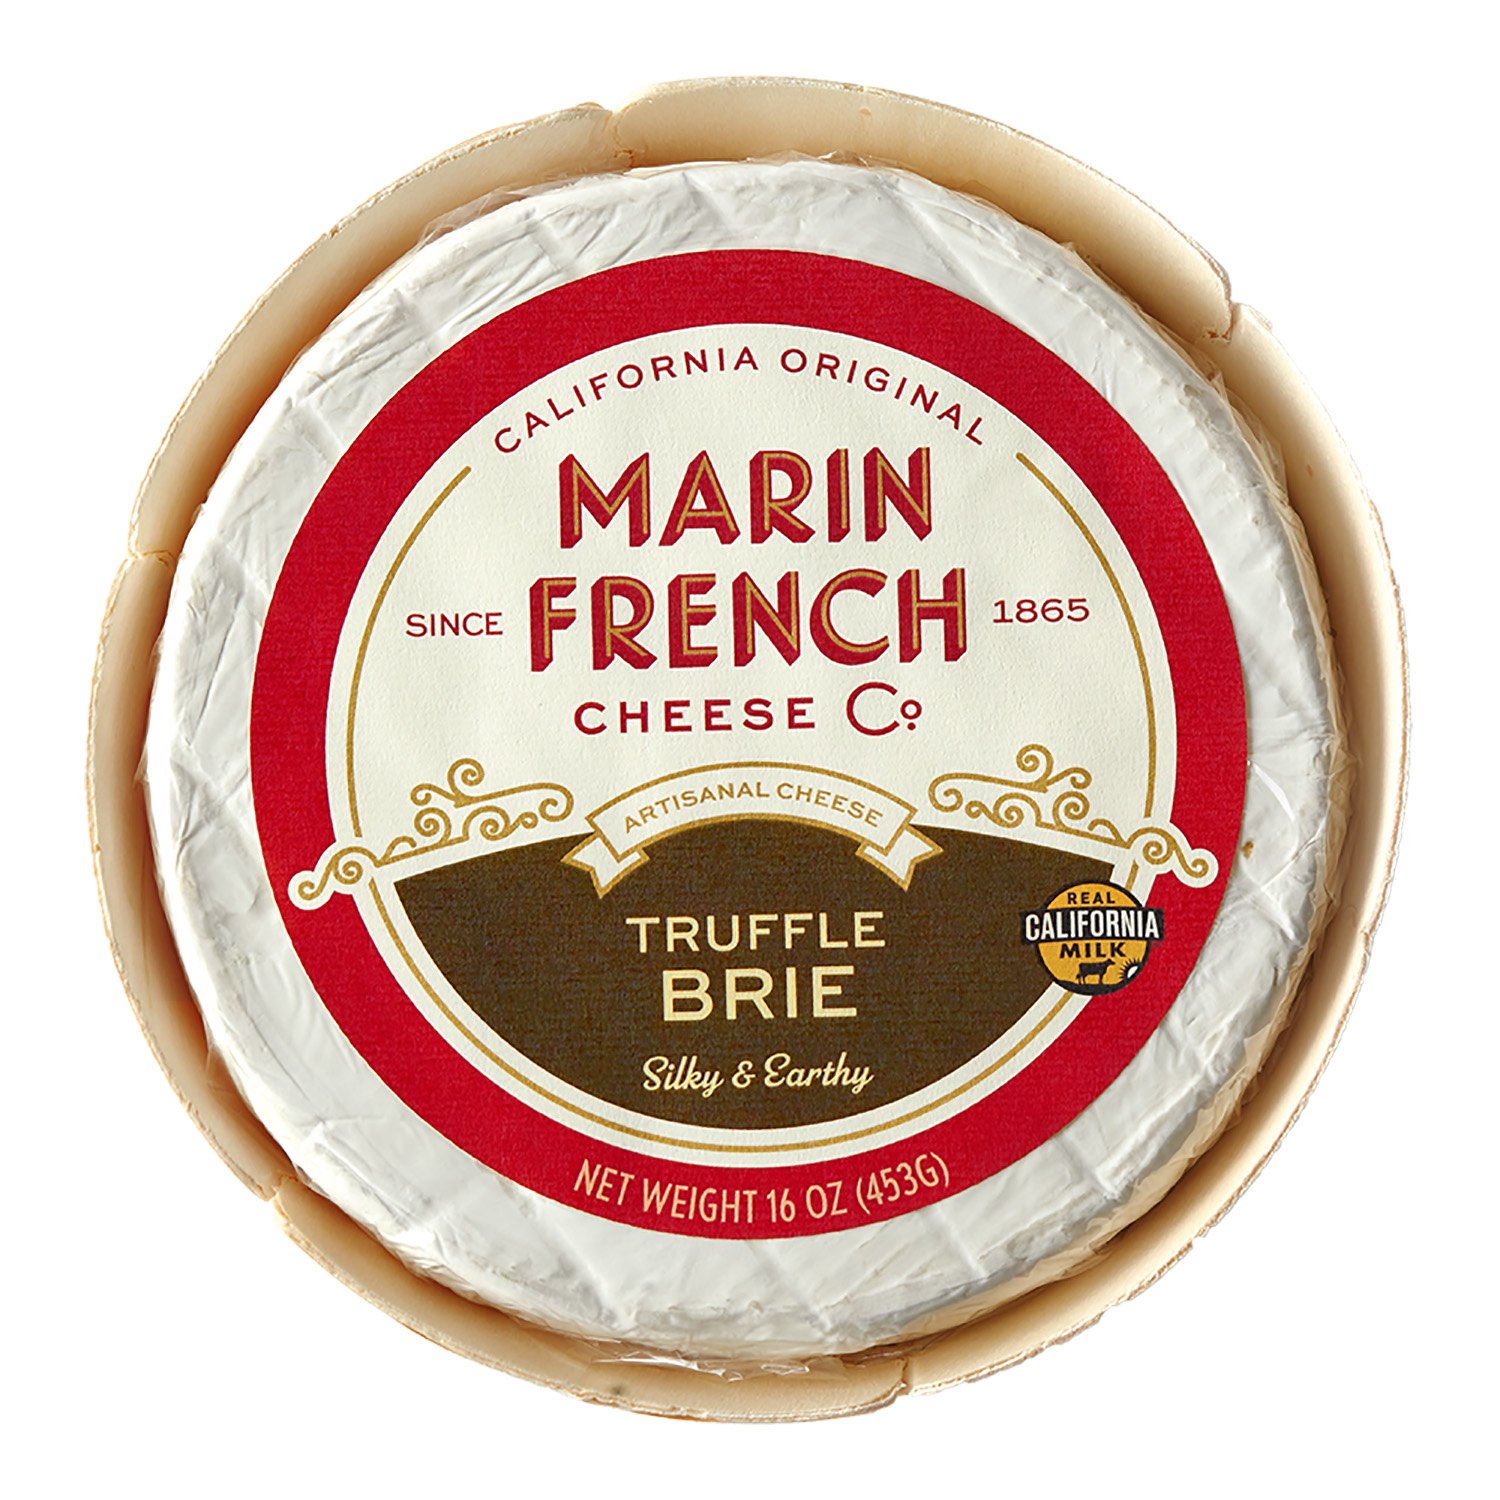 MFC_16oz Truffle Brie Front Label_High Res